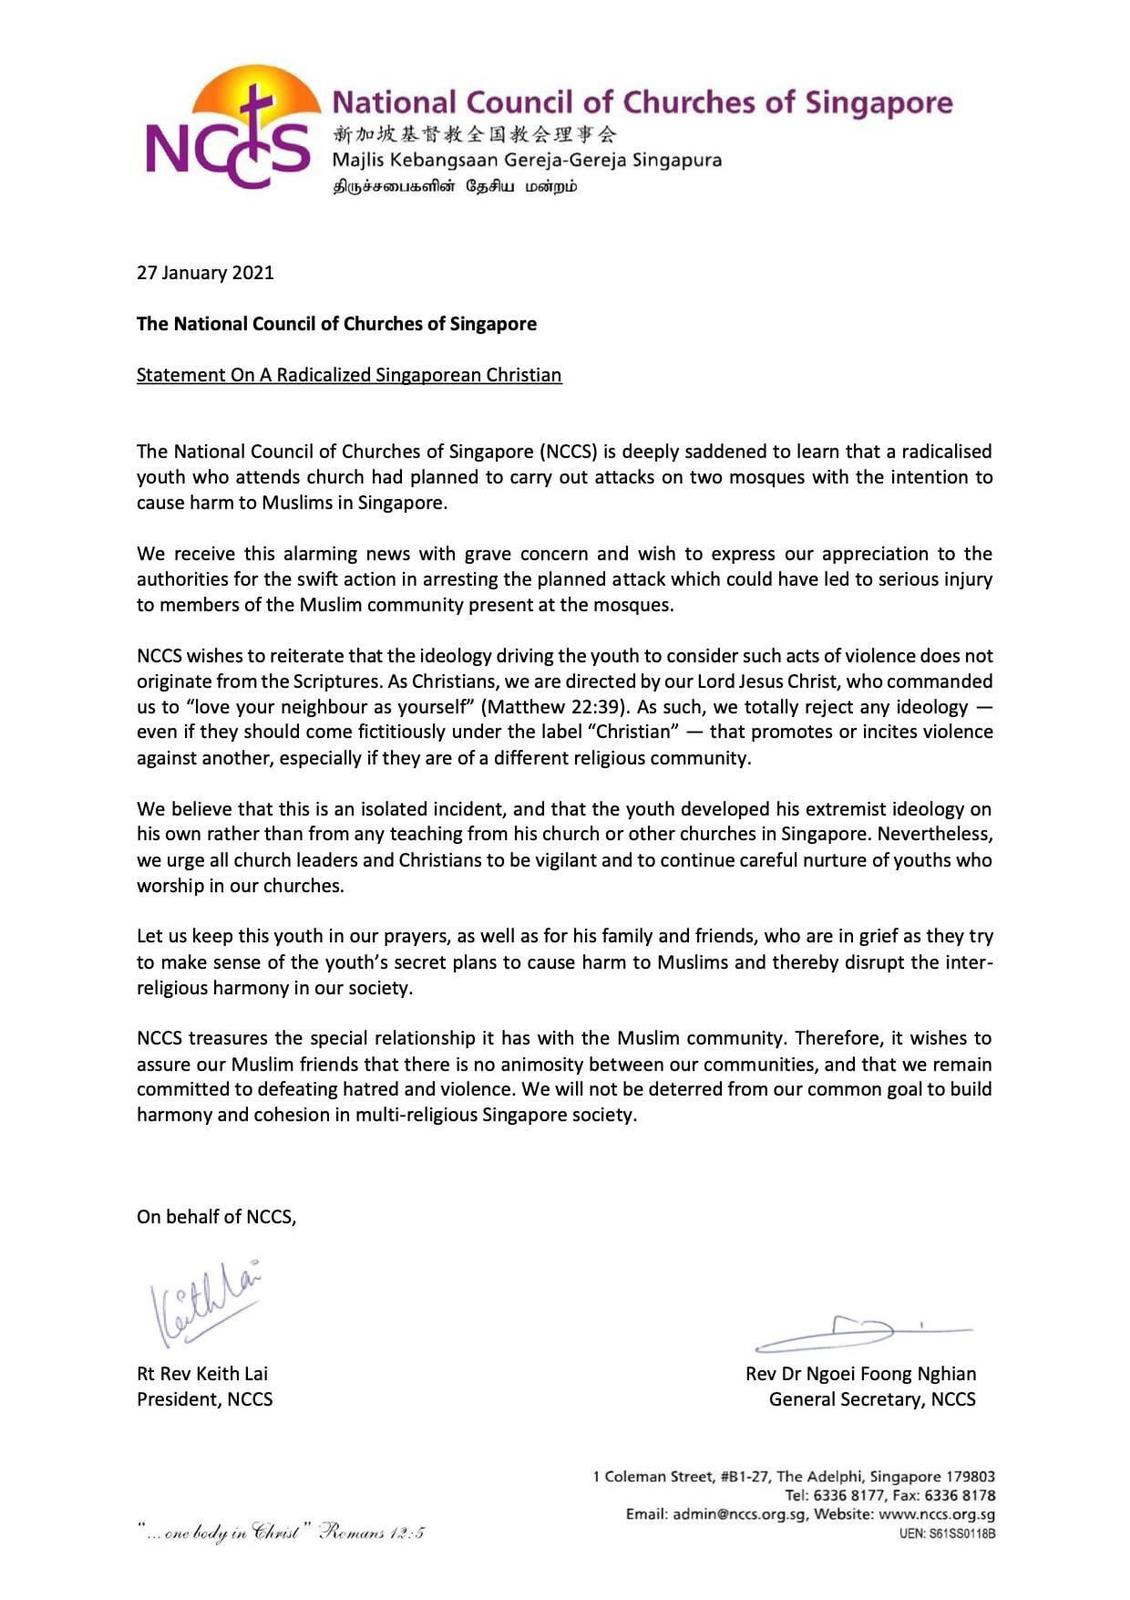 Letter from National Council of Churches of Singapore to Muslim community